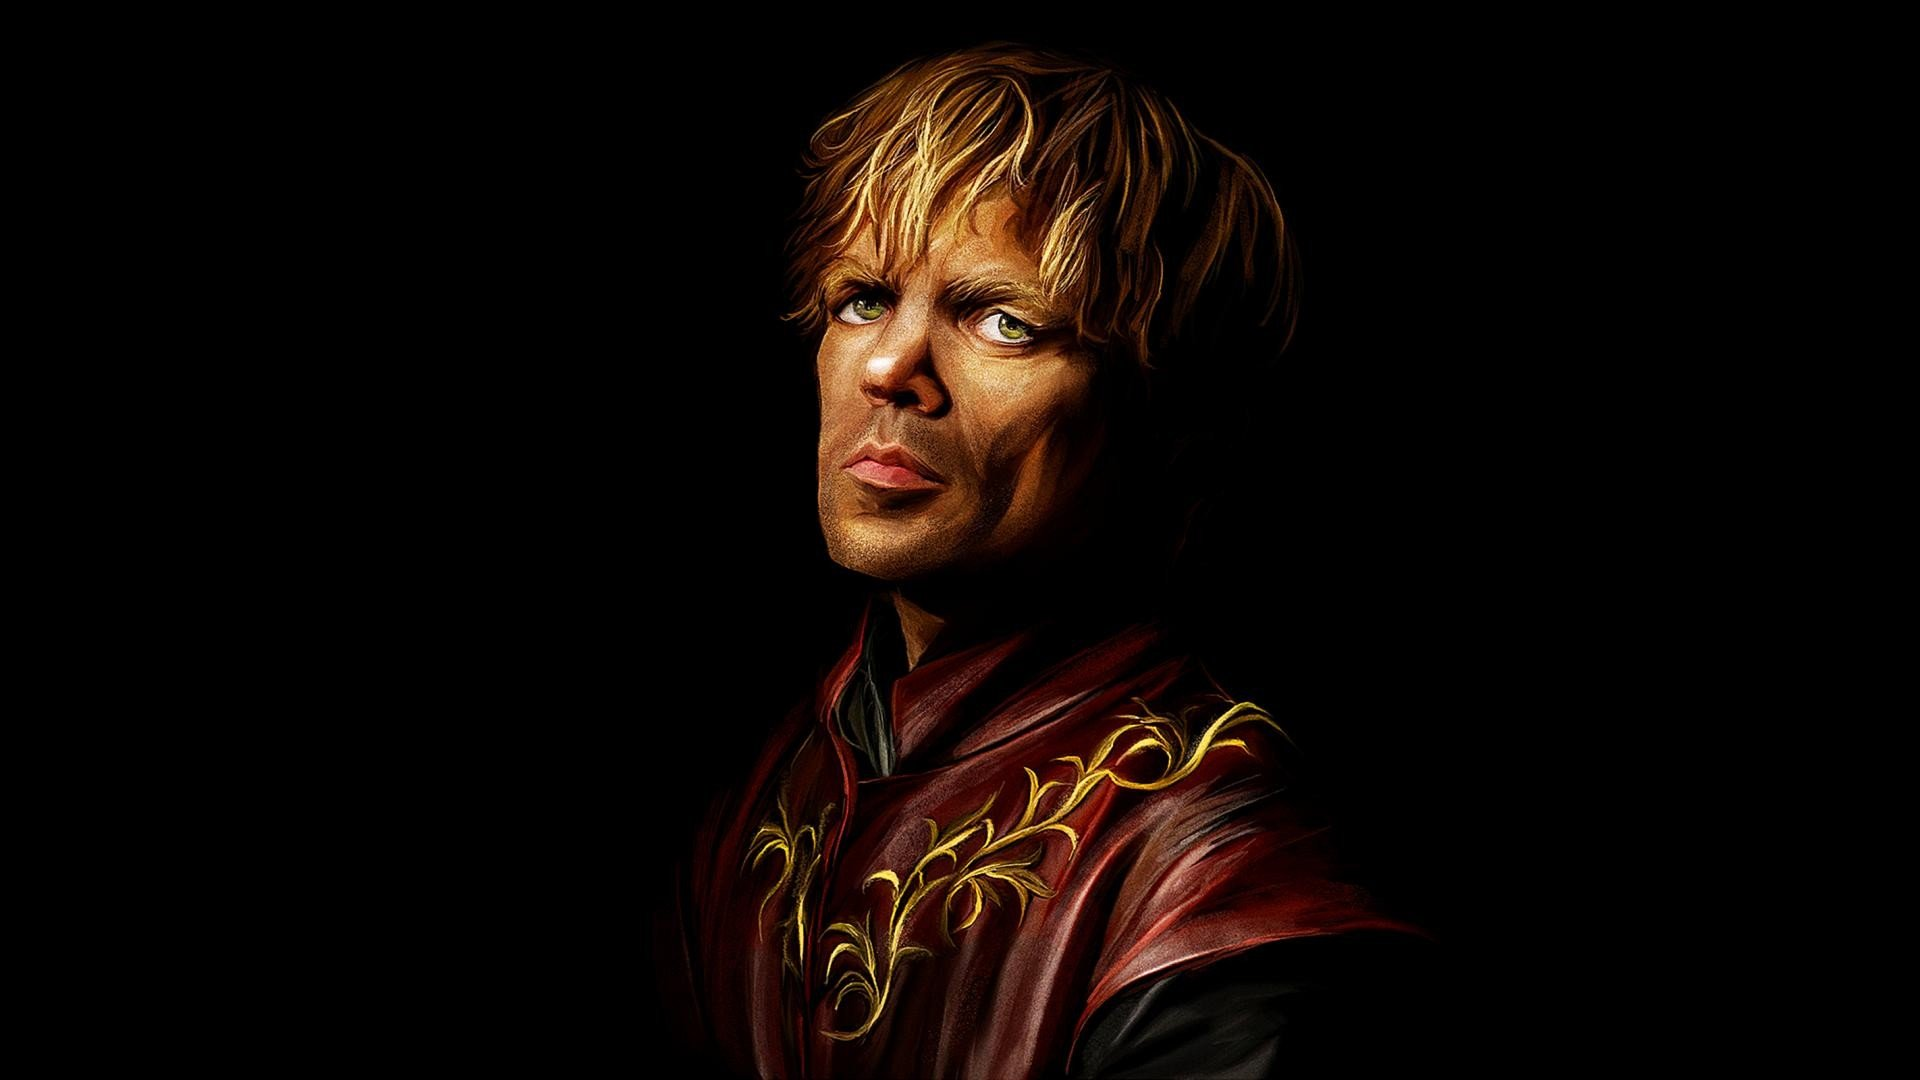 Artwork Actors Game Of Thrones TV Series Tyrion Lannister Peter Dinklage Wallpaper